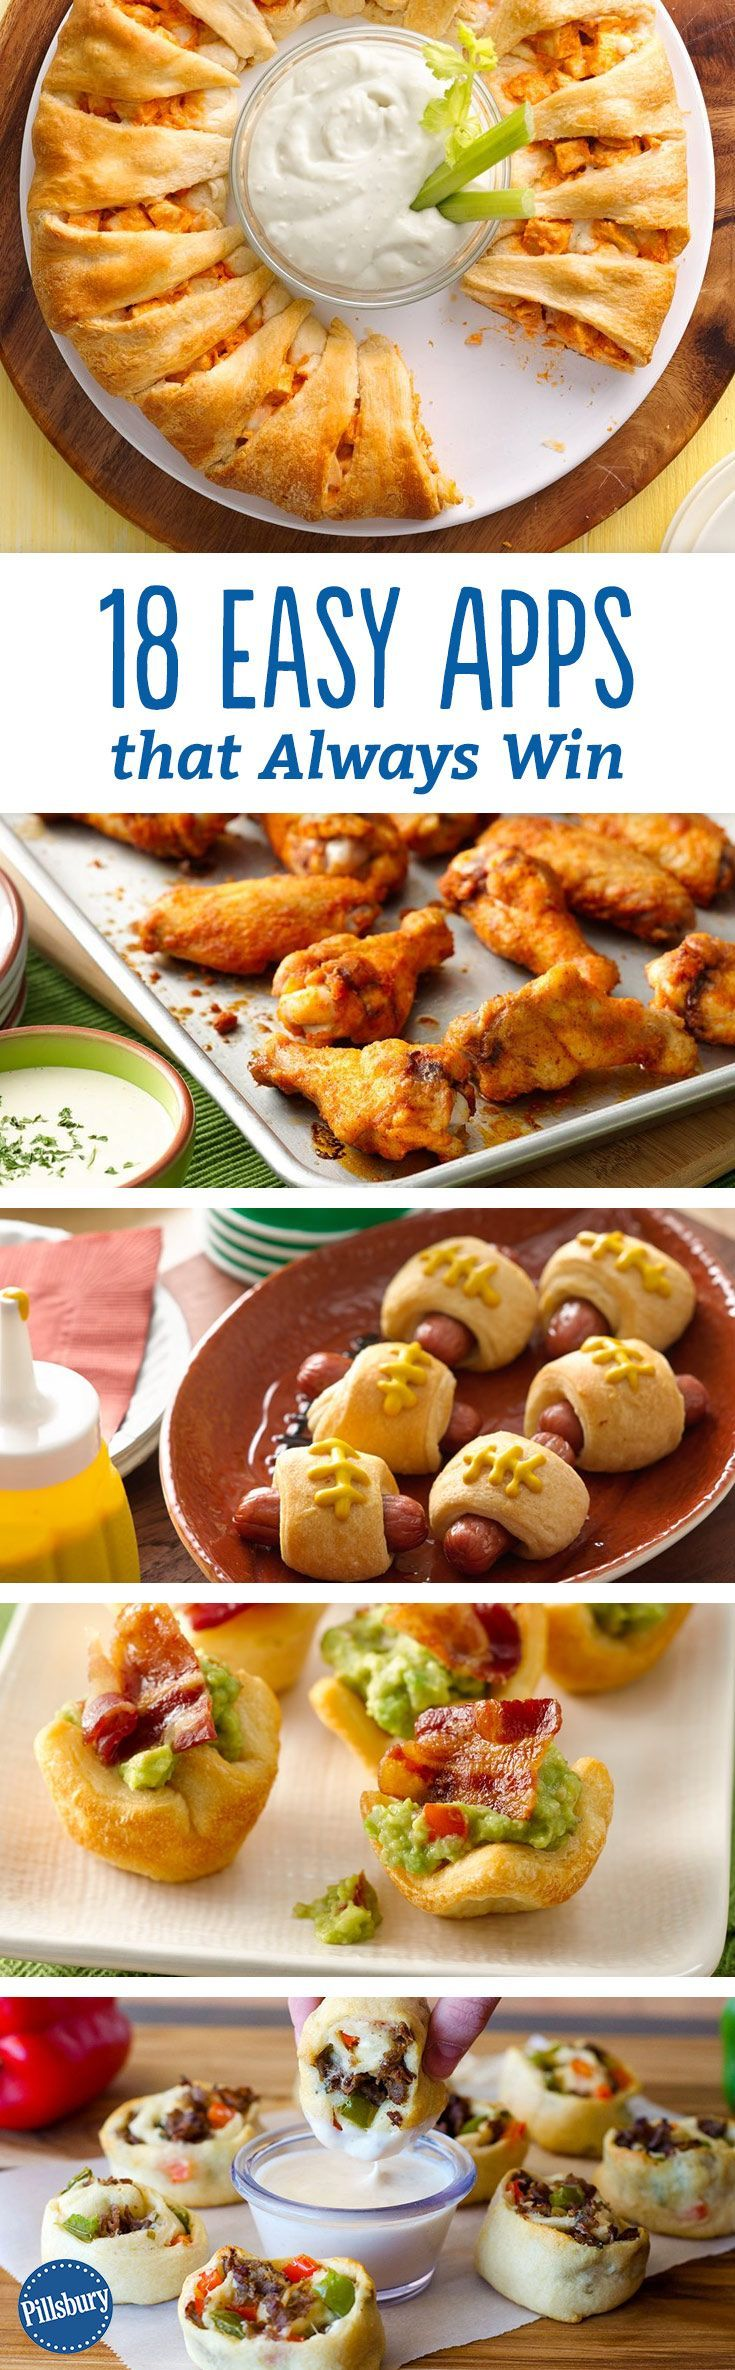 Looking for something to make for your game day party this weekend? We got you covered with 18 easy appetizers that will always win!